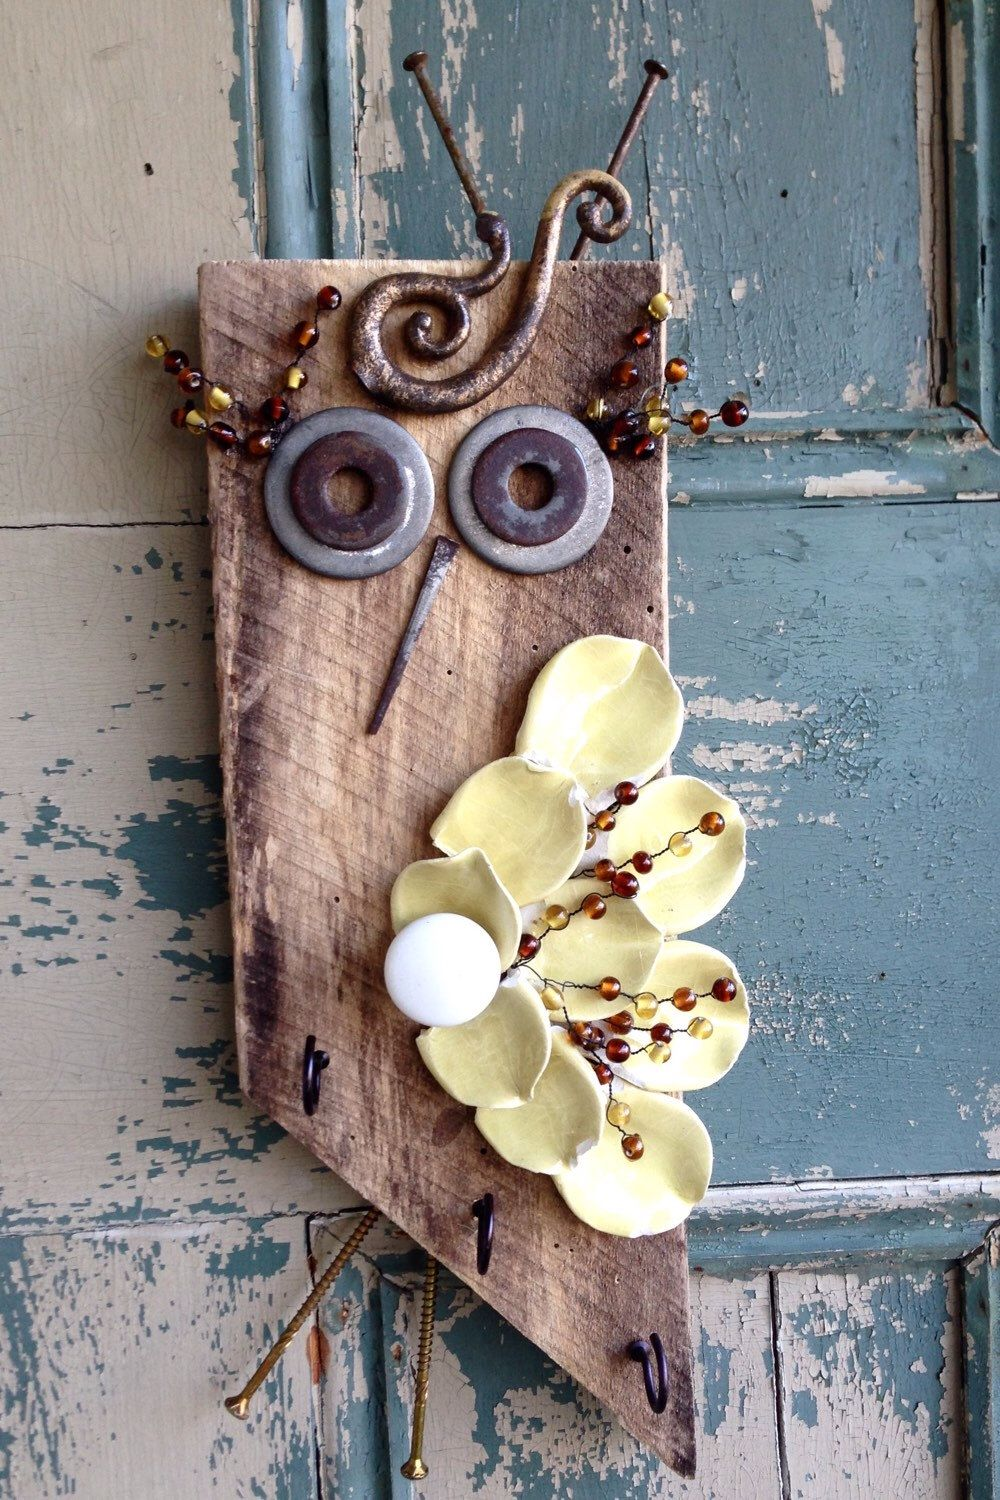 Pin By Carol Johncock On Girlbage Owl Crafts Crafts Owl